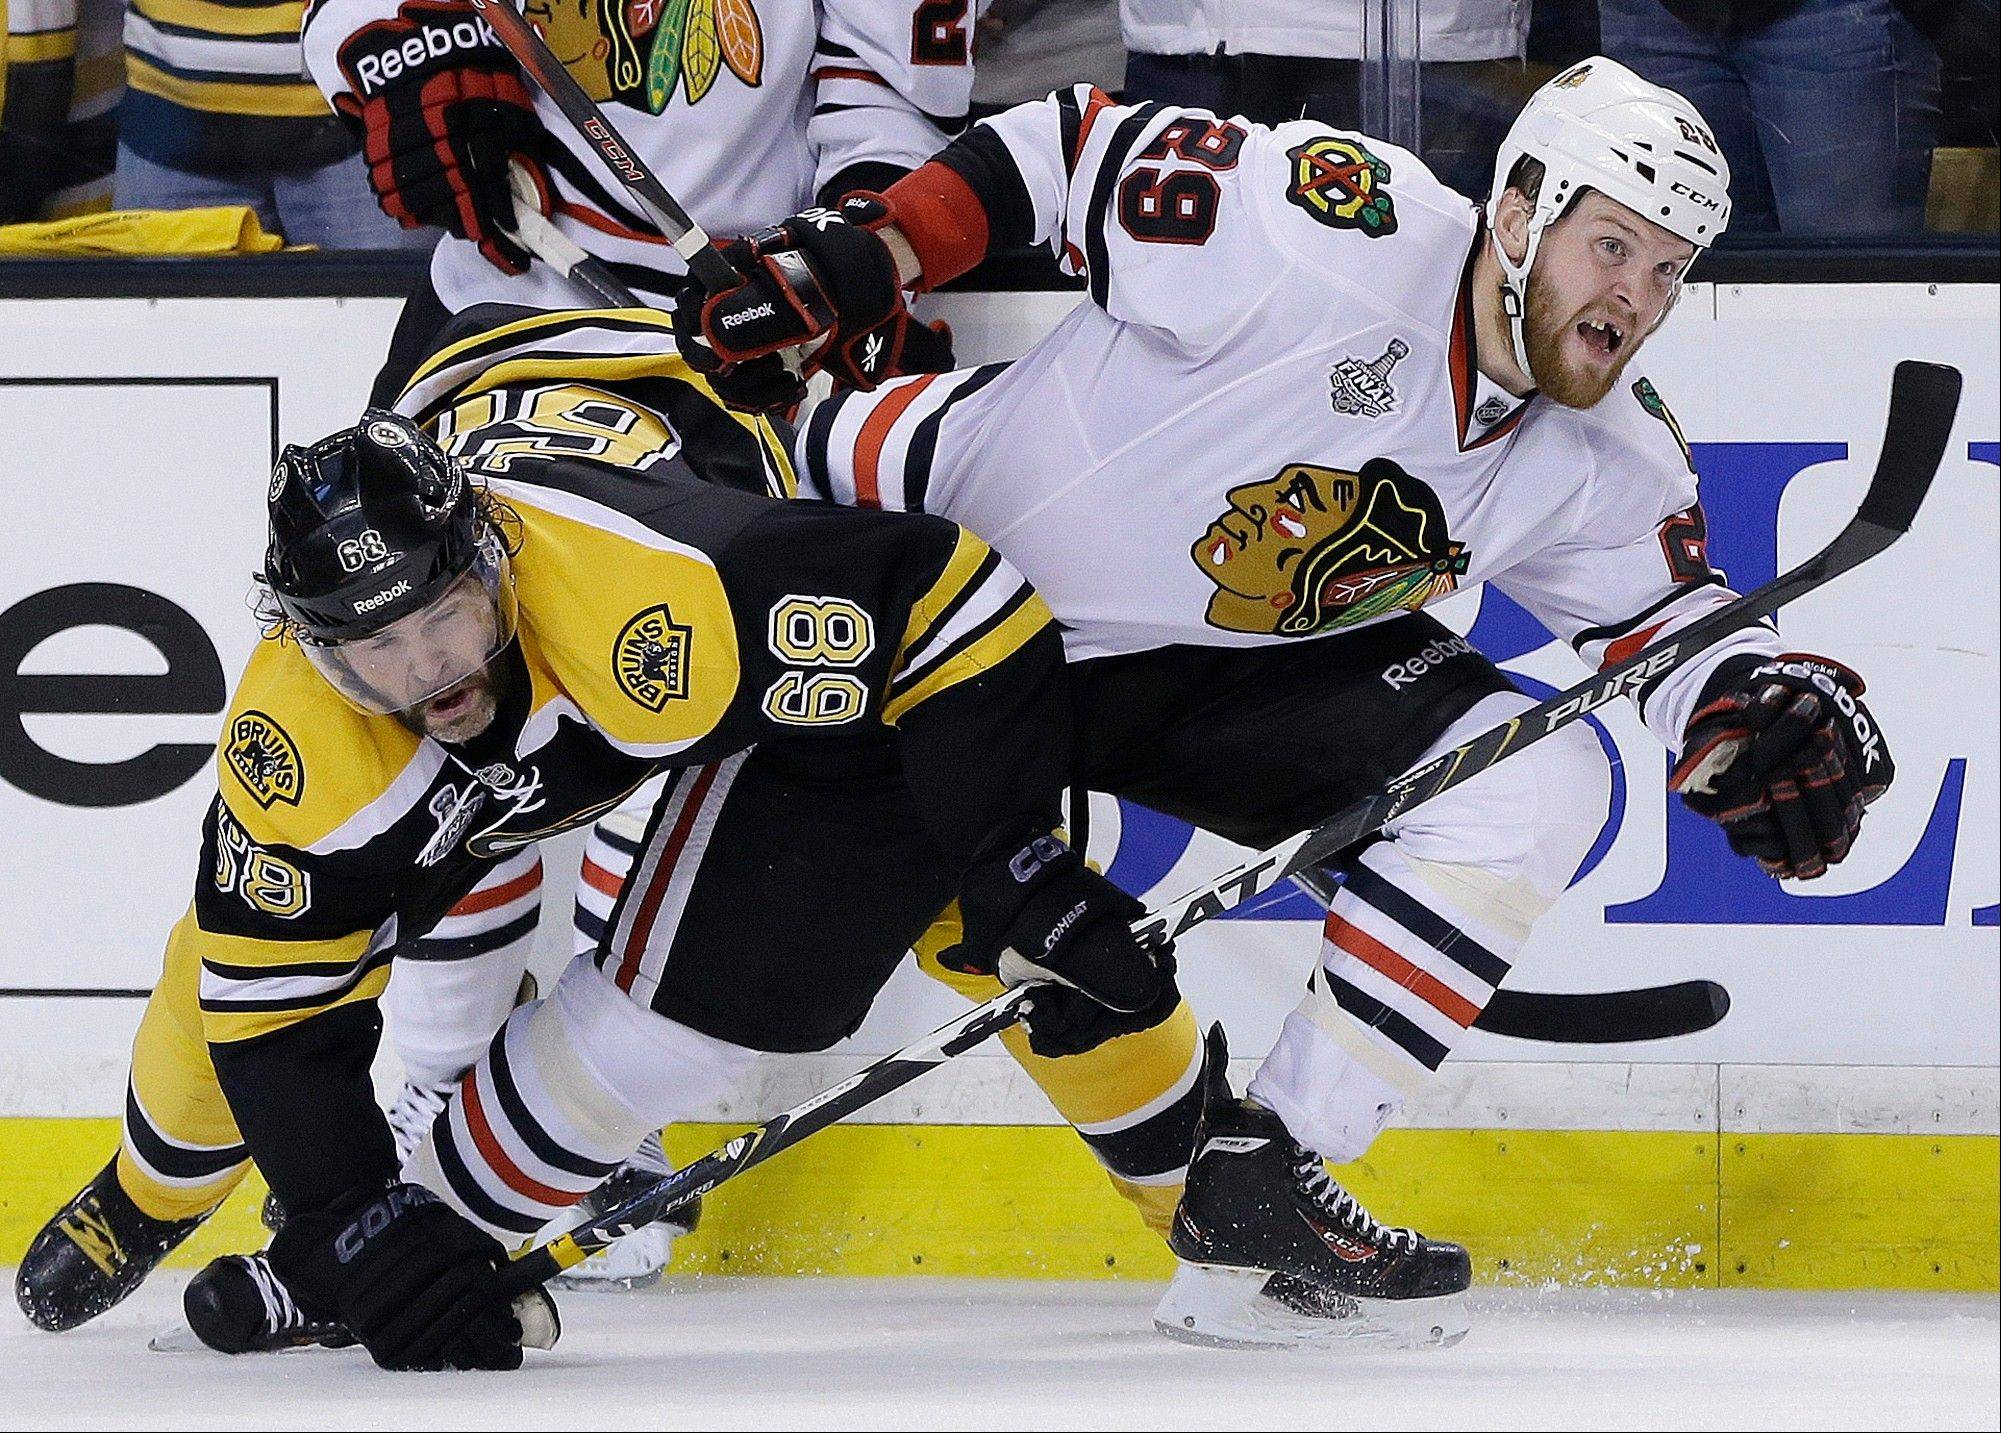 Boston Bruins right wing Jaromir Jagr (68), of the Czech Republic, ties up Chicago Blackhawks left wing Bryan Bickell (29) during the third period in Game 3 of the NHL hockey Stanley Cup Finals in Boston, Monday, June 17, 2013. The Bruins won 2-0.